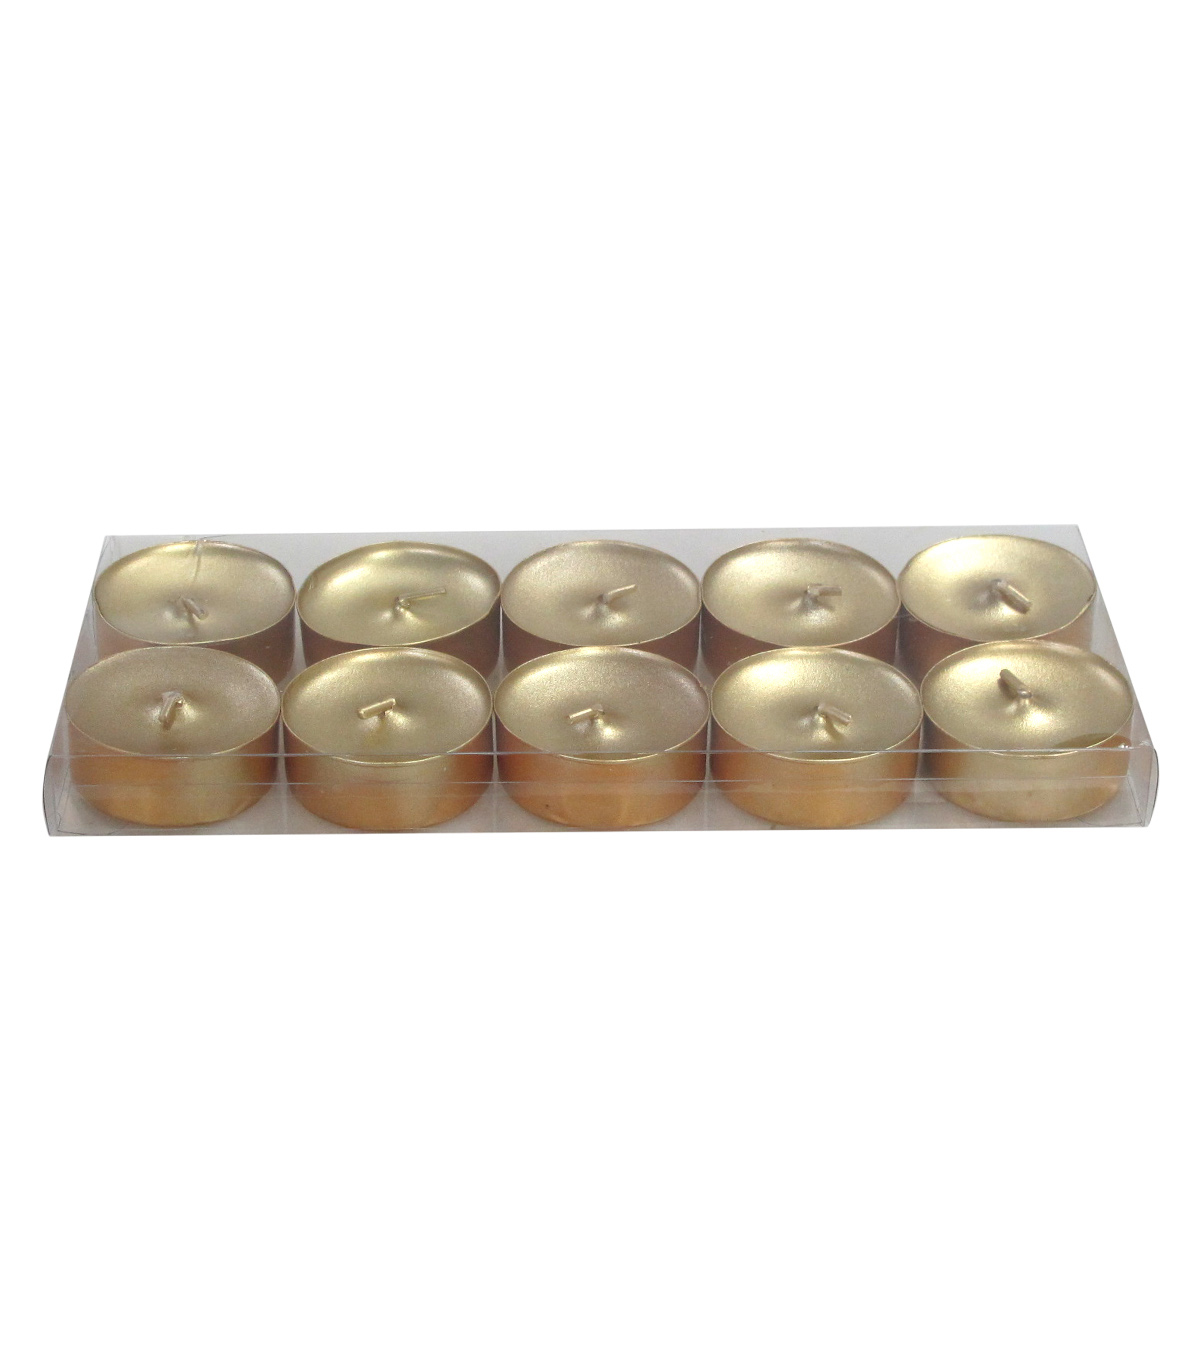 Hudson 43 Candle & Light Collection 10 Pack Poured Tealights Unscented Gold